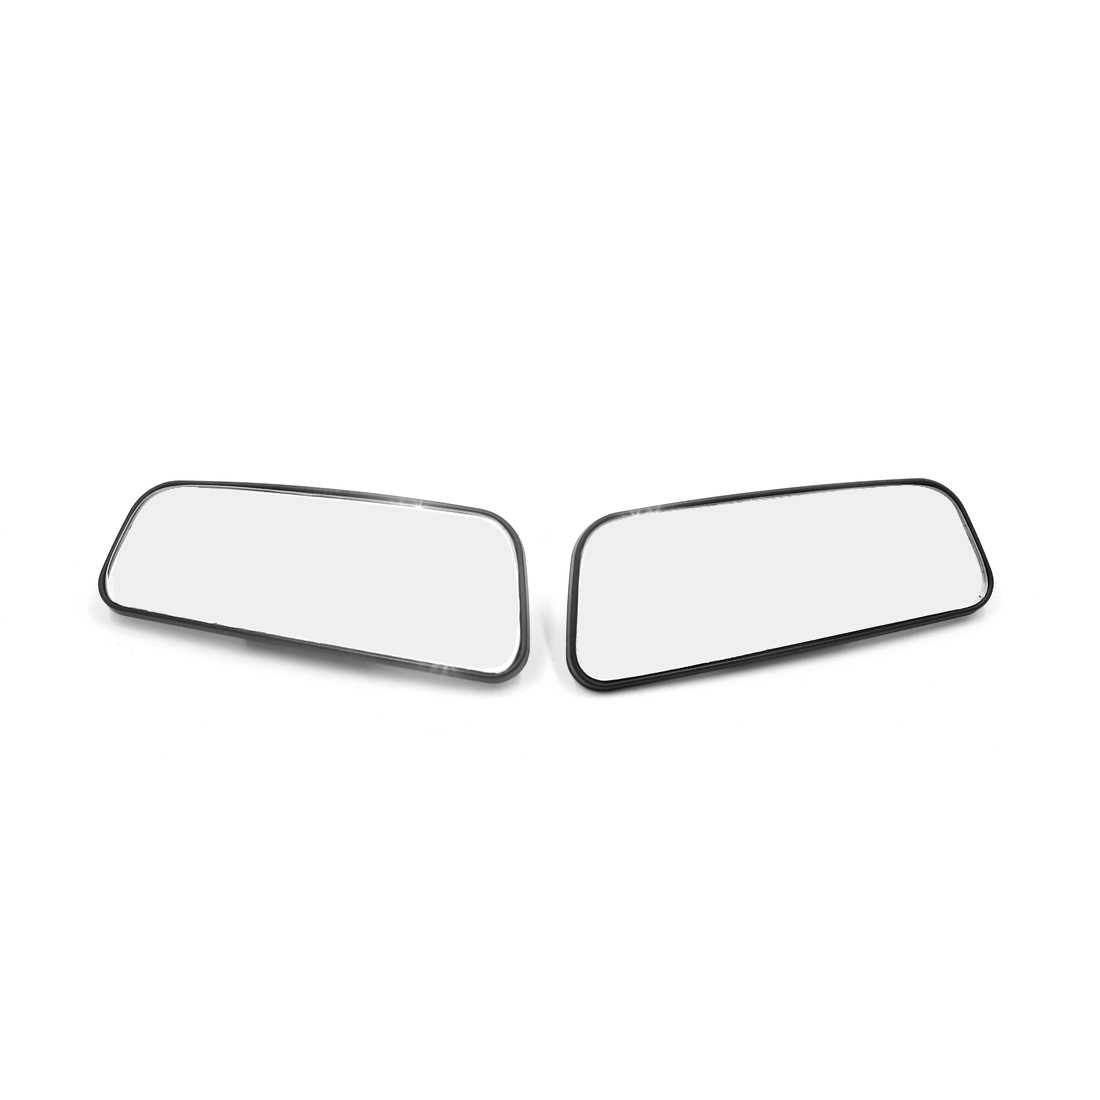 2pcs 360 Degree Wide Angle Rear Side View Auxiliary Blind Spot Mirror for Car - image 2 de 3